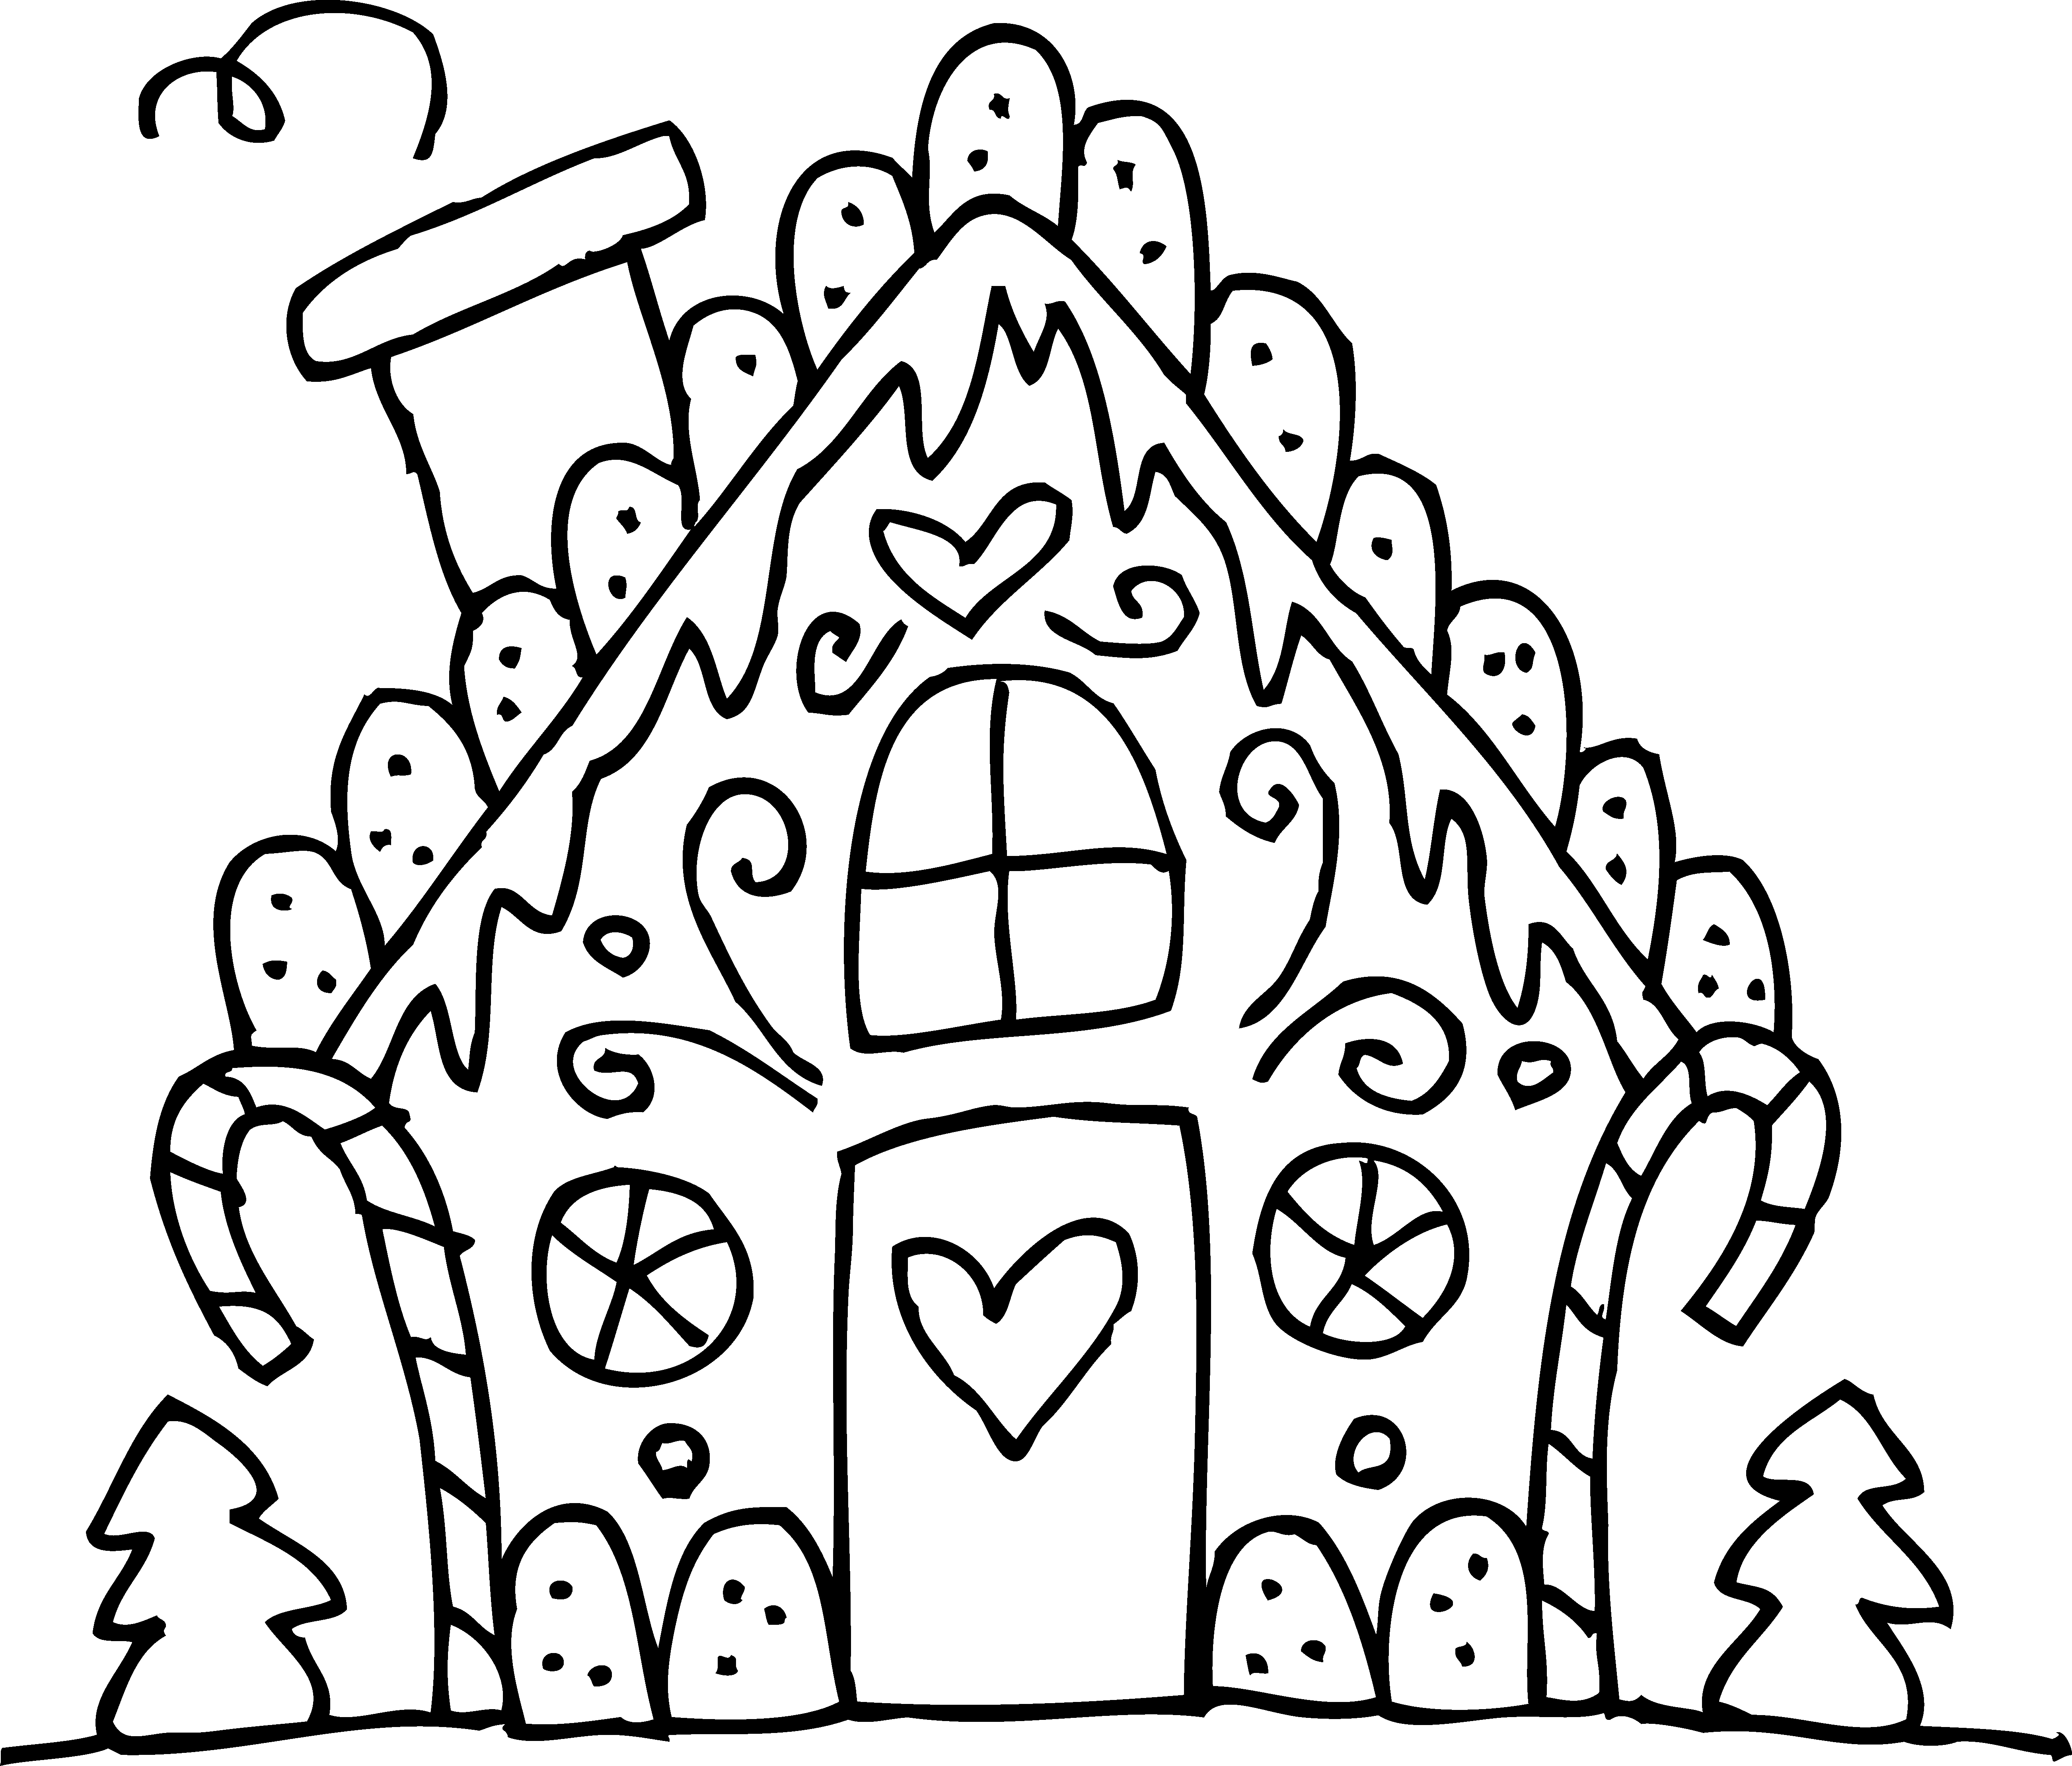 Candy house drawing at. Farmhouse clipart village school